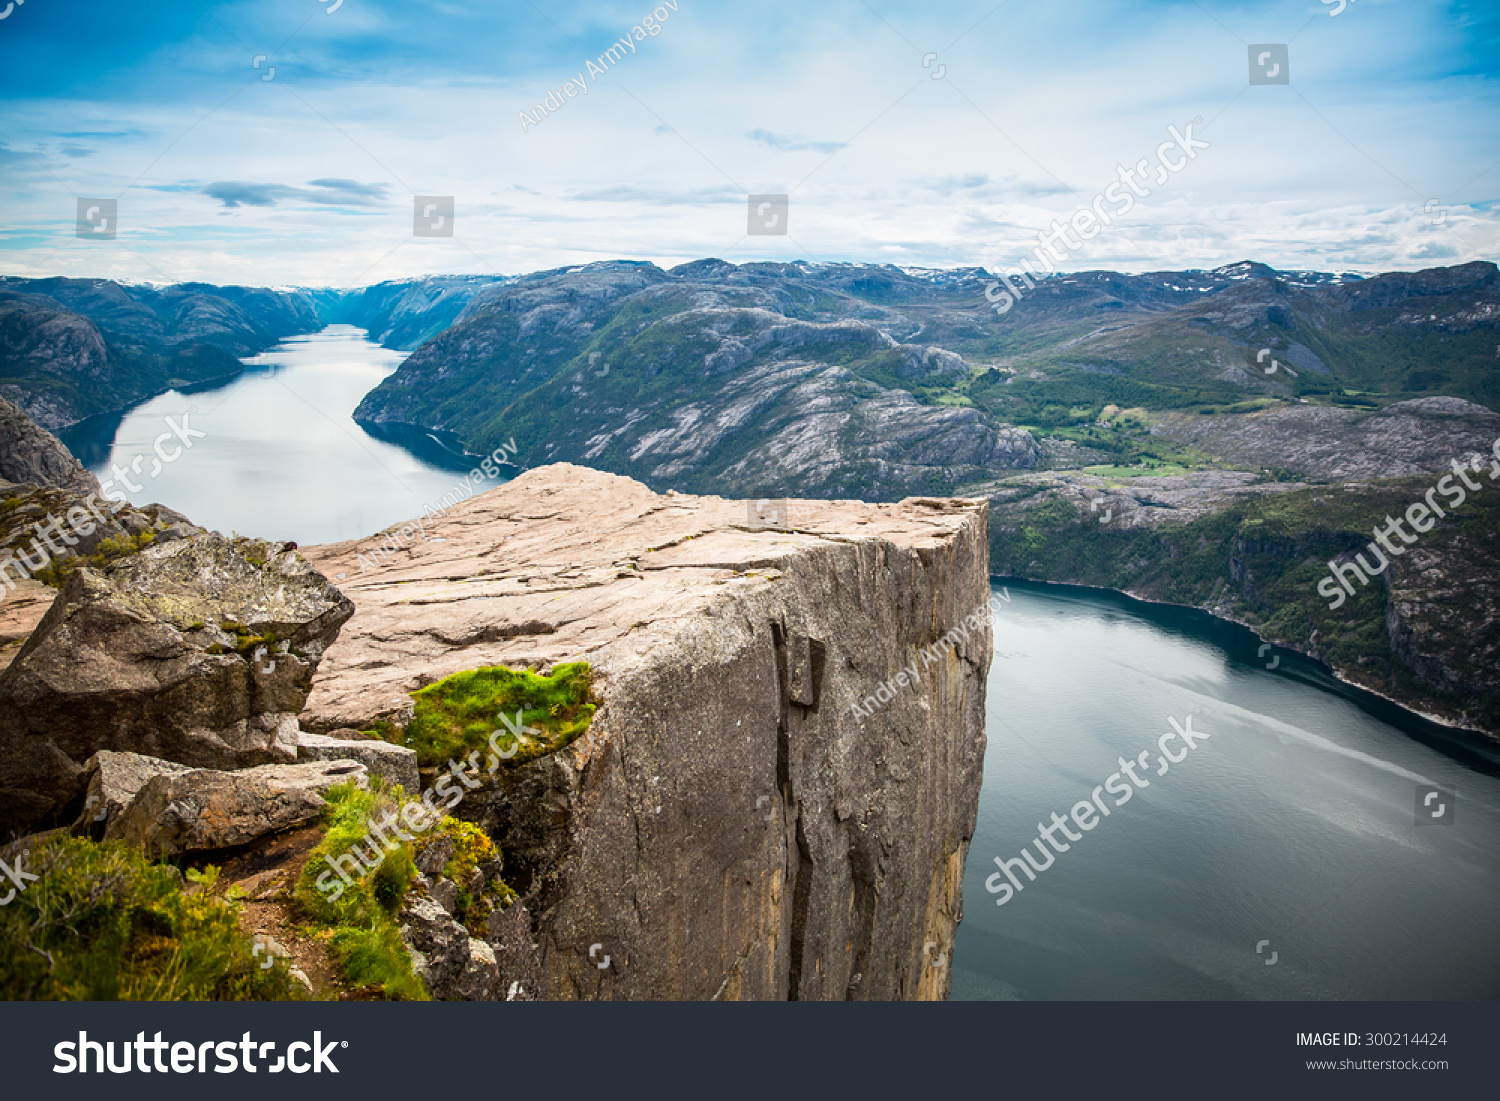 Preikestolen or Prekestolen also known by the English translations of Preacher's Pulpit or Pulpit Rock is a famous tourist attraction in Forsand Ryfylke Norway